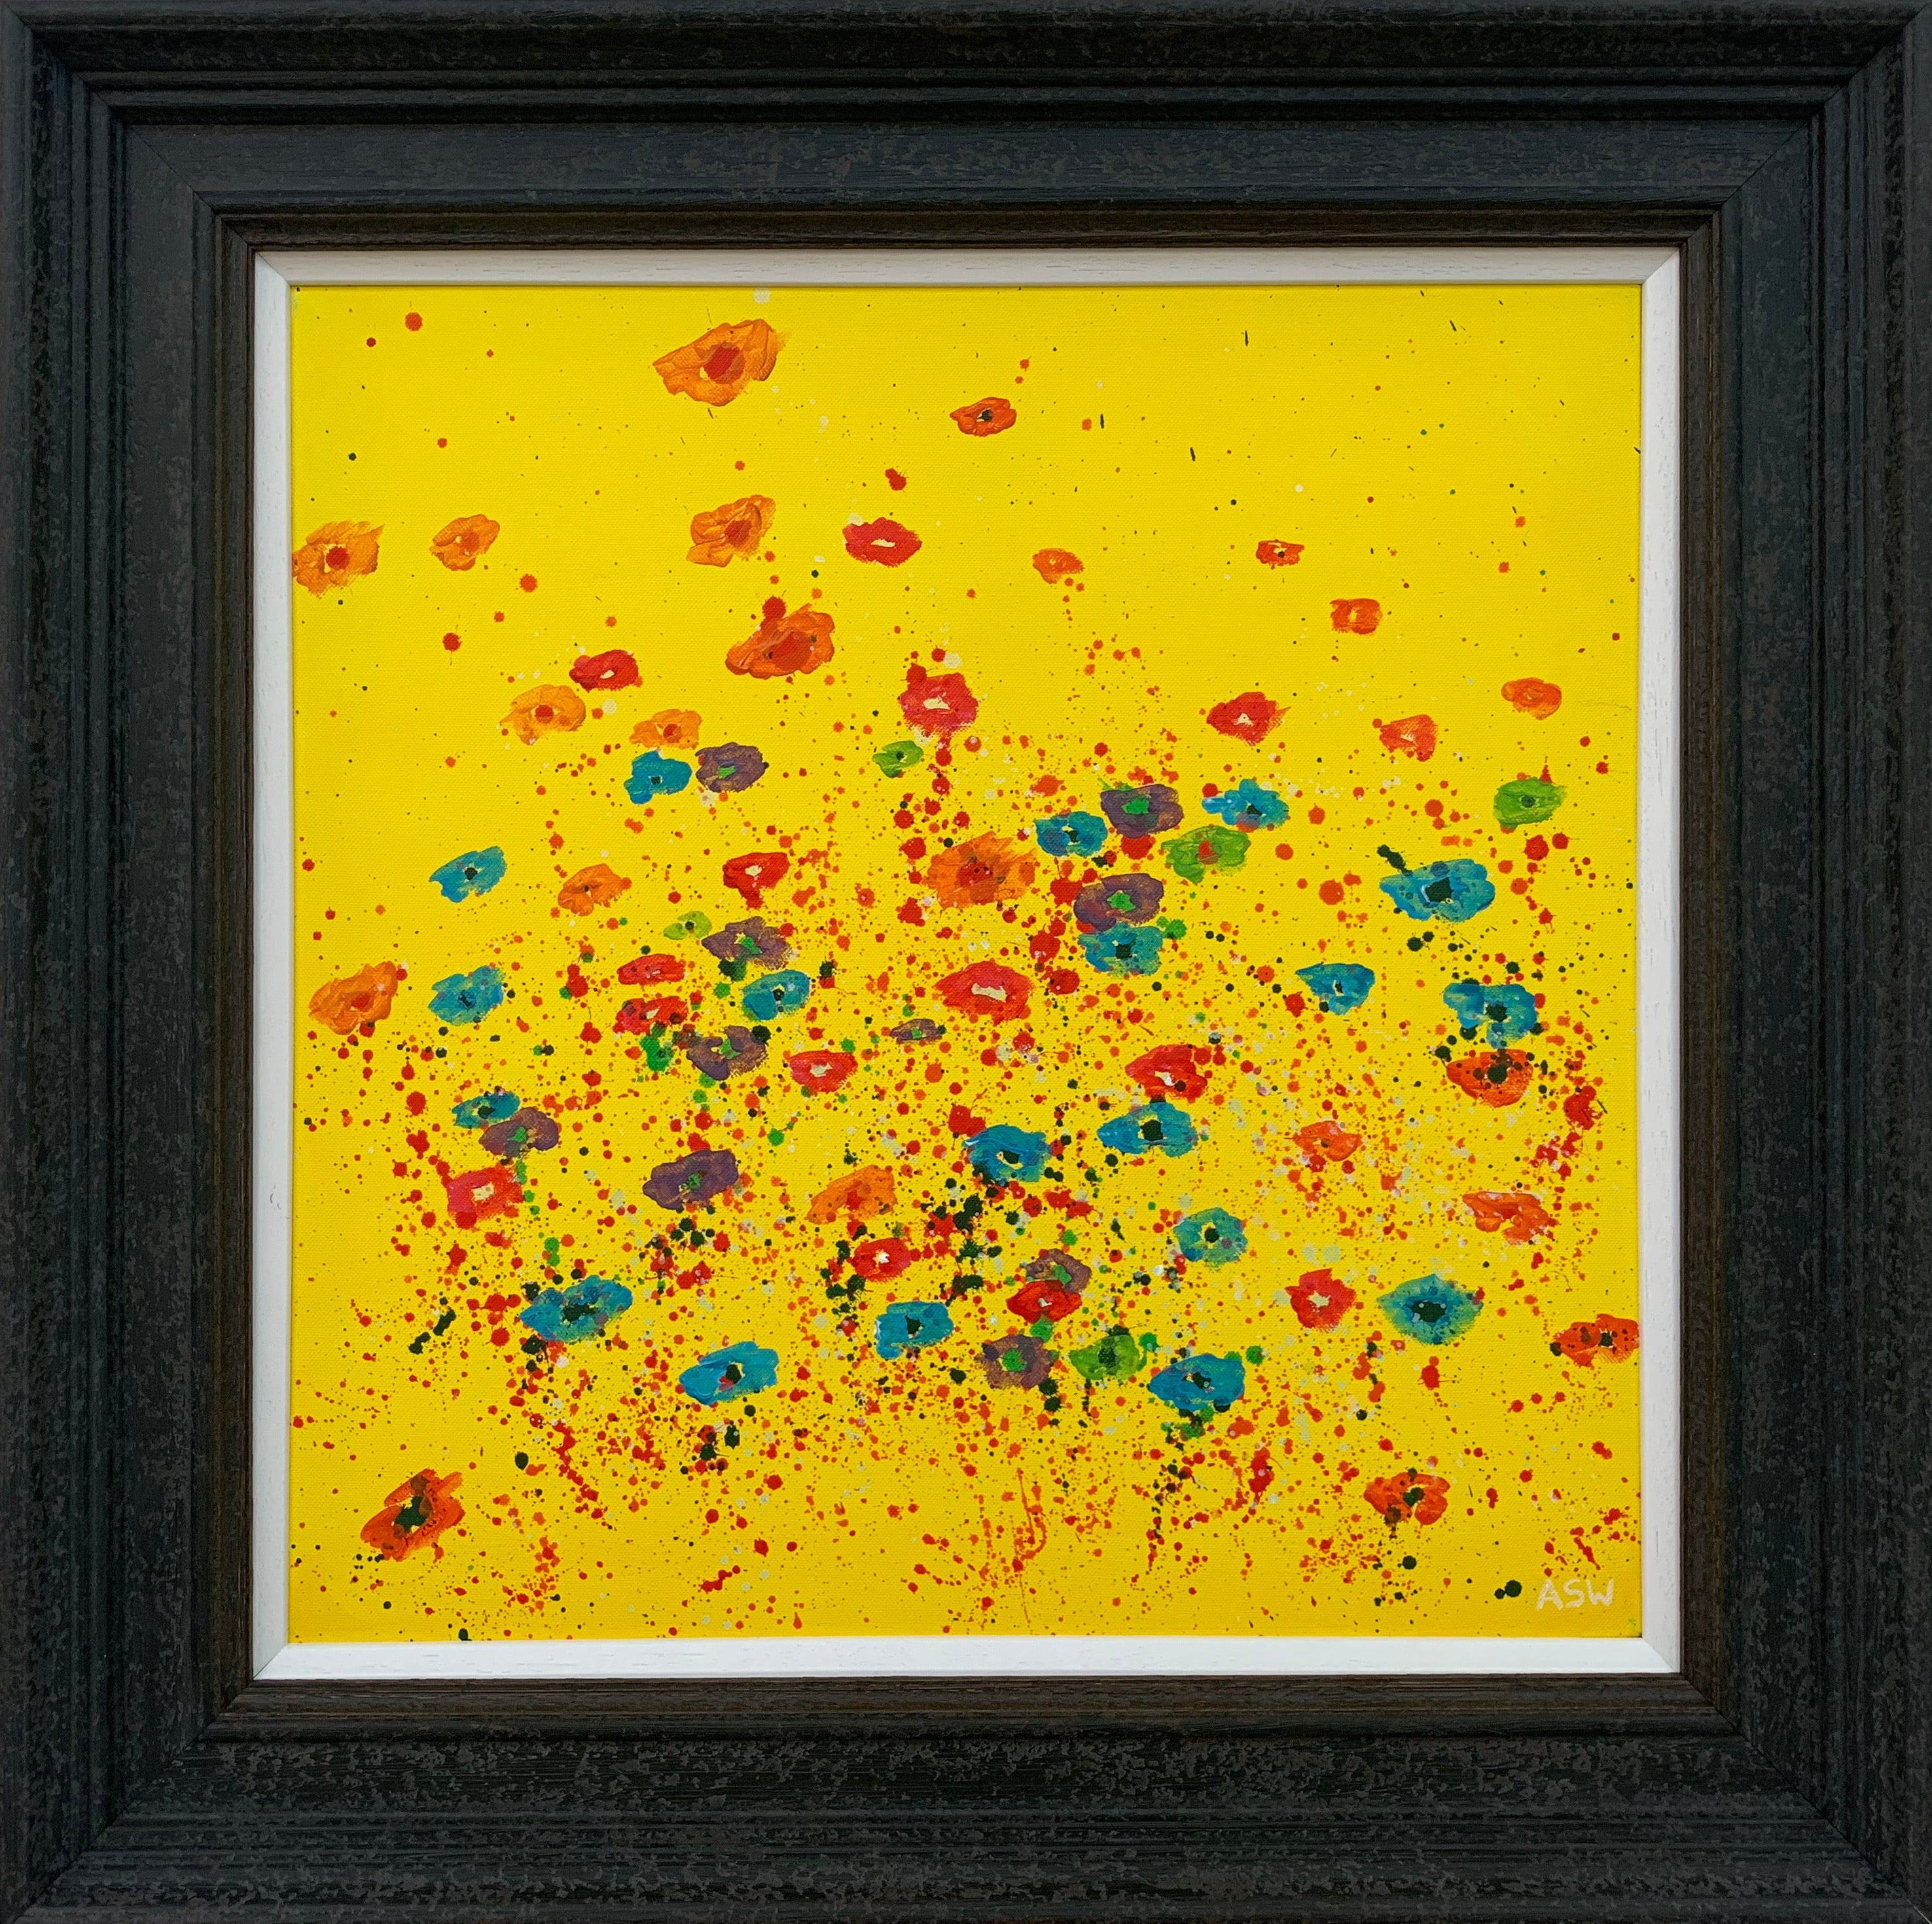 Abstract Red Pink Blue Flowers on Yellow Background by British Landscape Artist